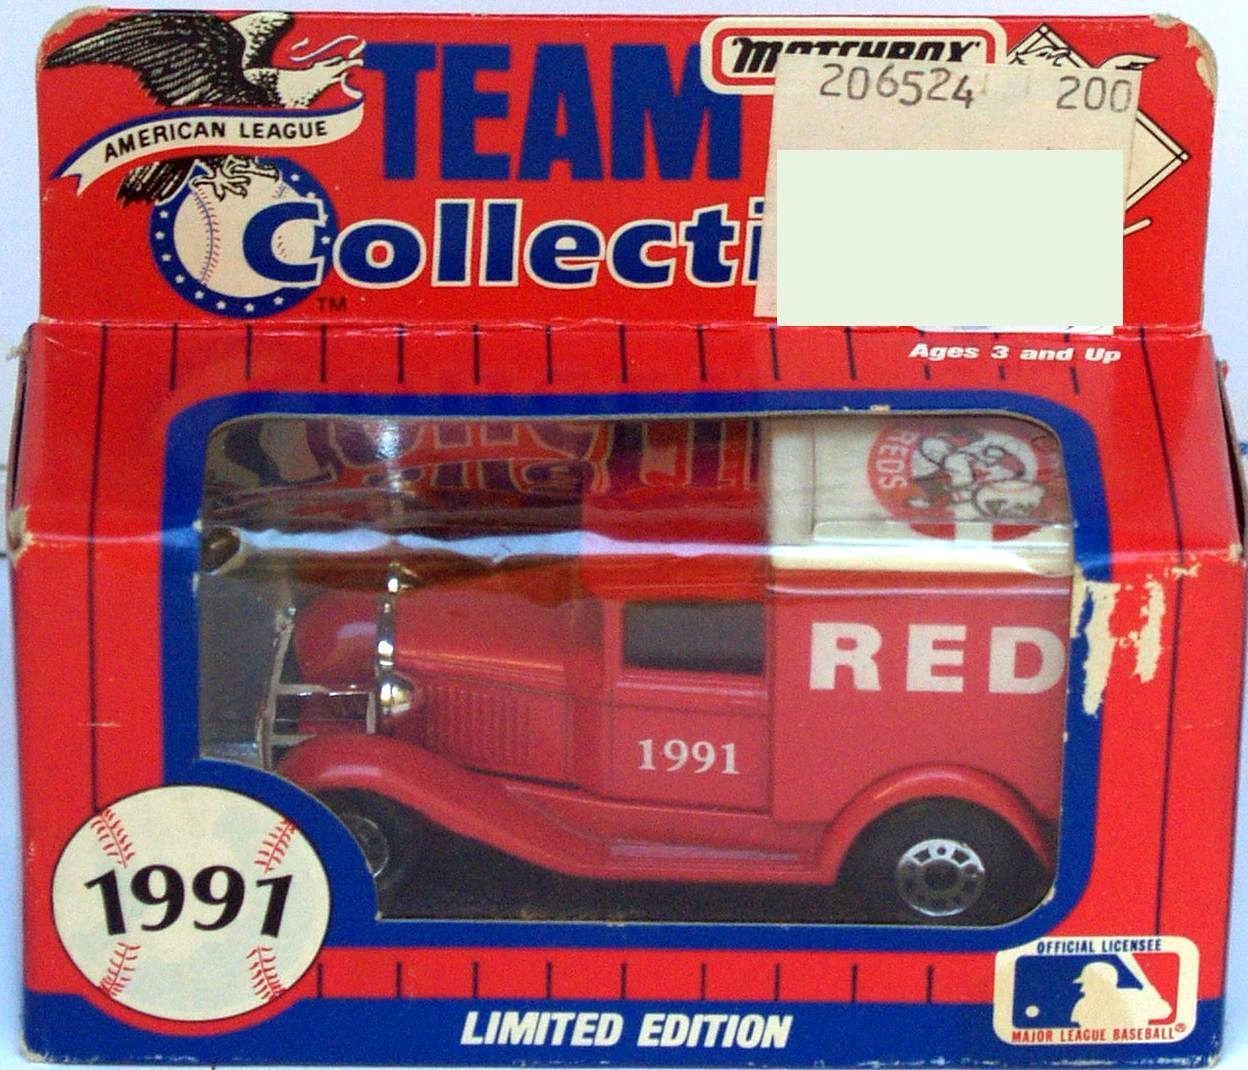 1991 MATCHBOX - TEAM MLB AMERICAN LEAGUE COLLECTIBLE - 1991 REDS